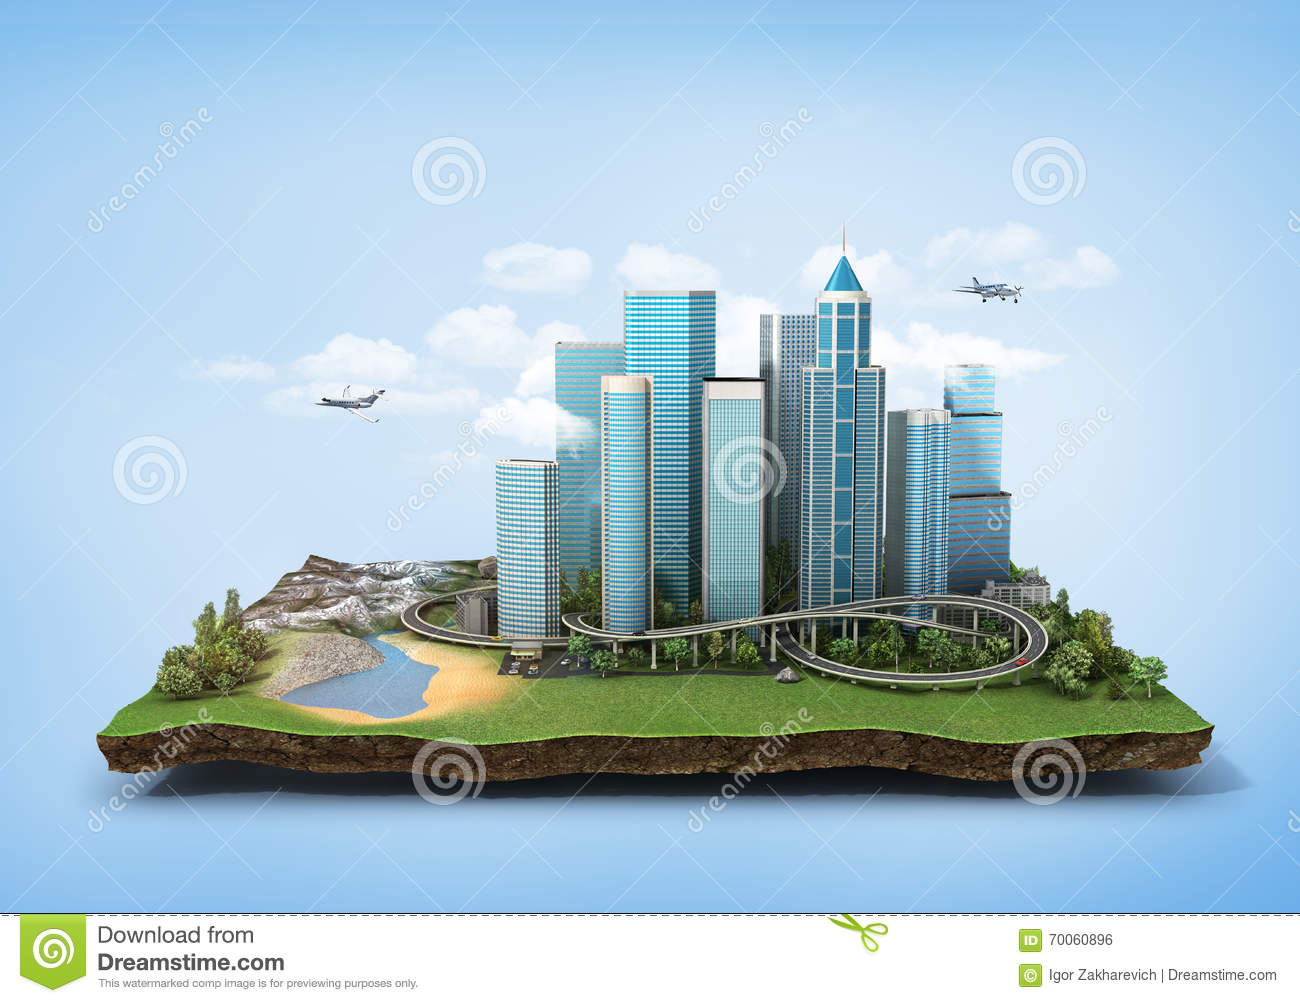 green eco city skyline concept cartoon vector. Black Bedroom Furniture Sets. Home Design Ideas